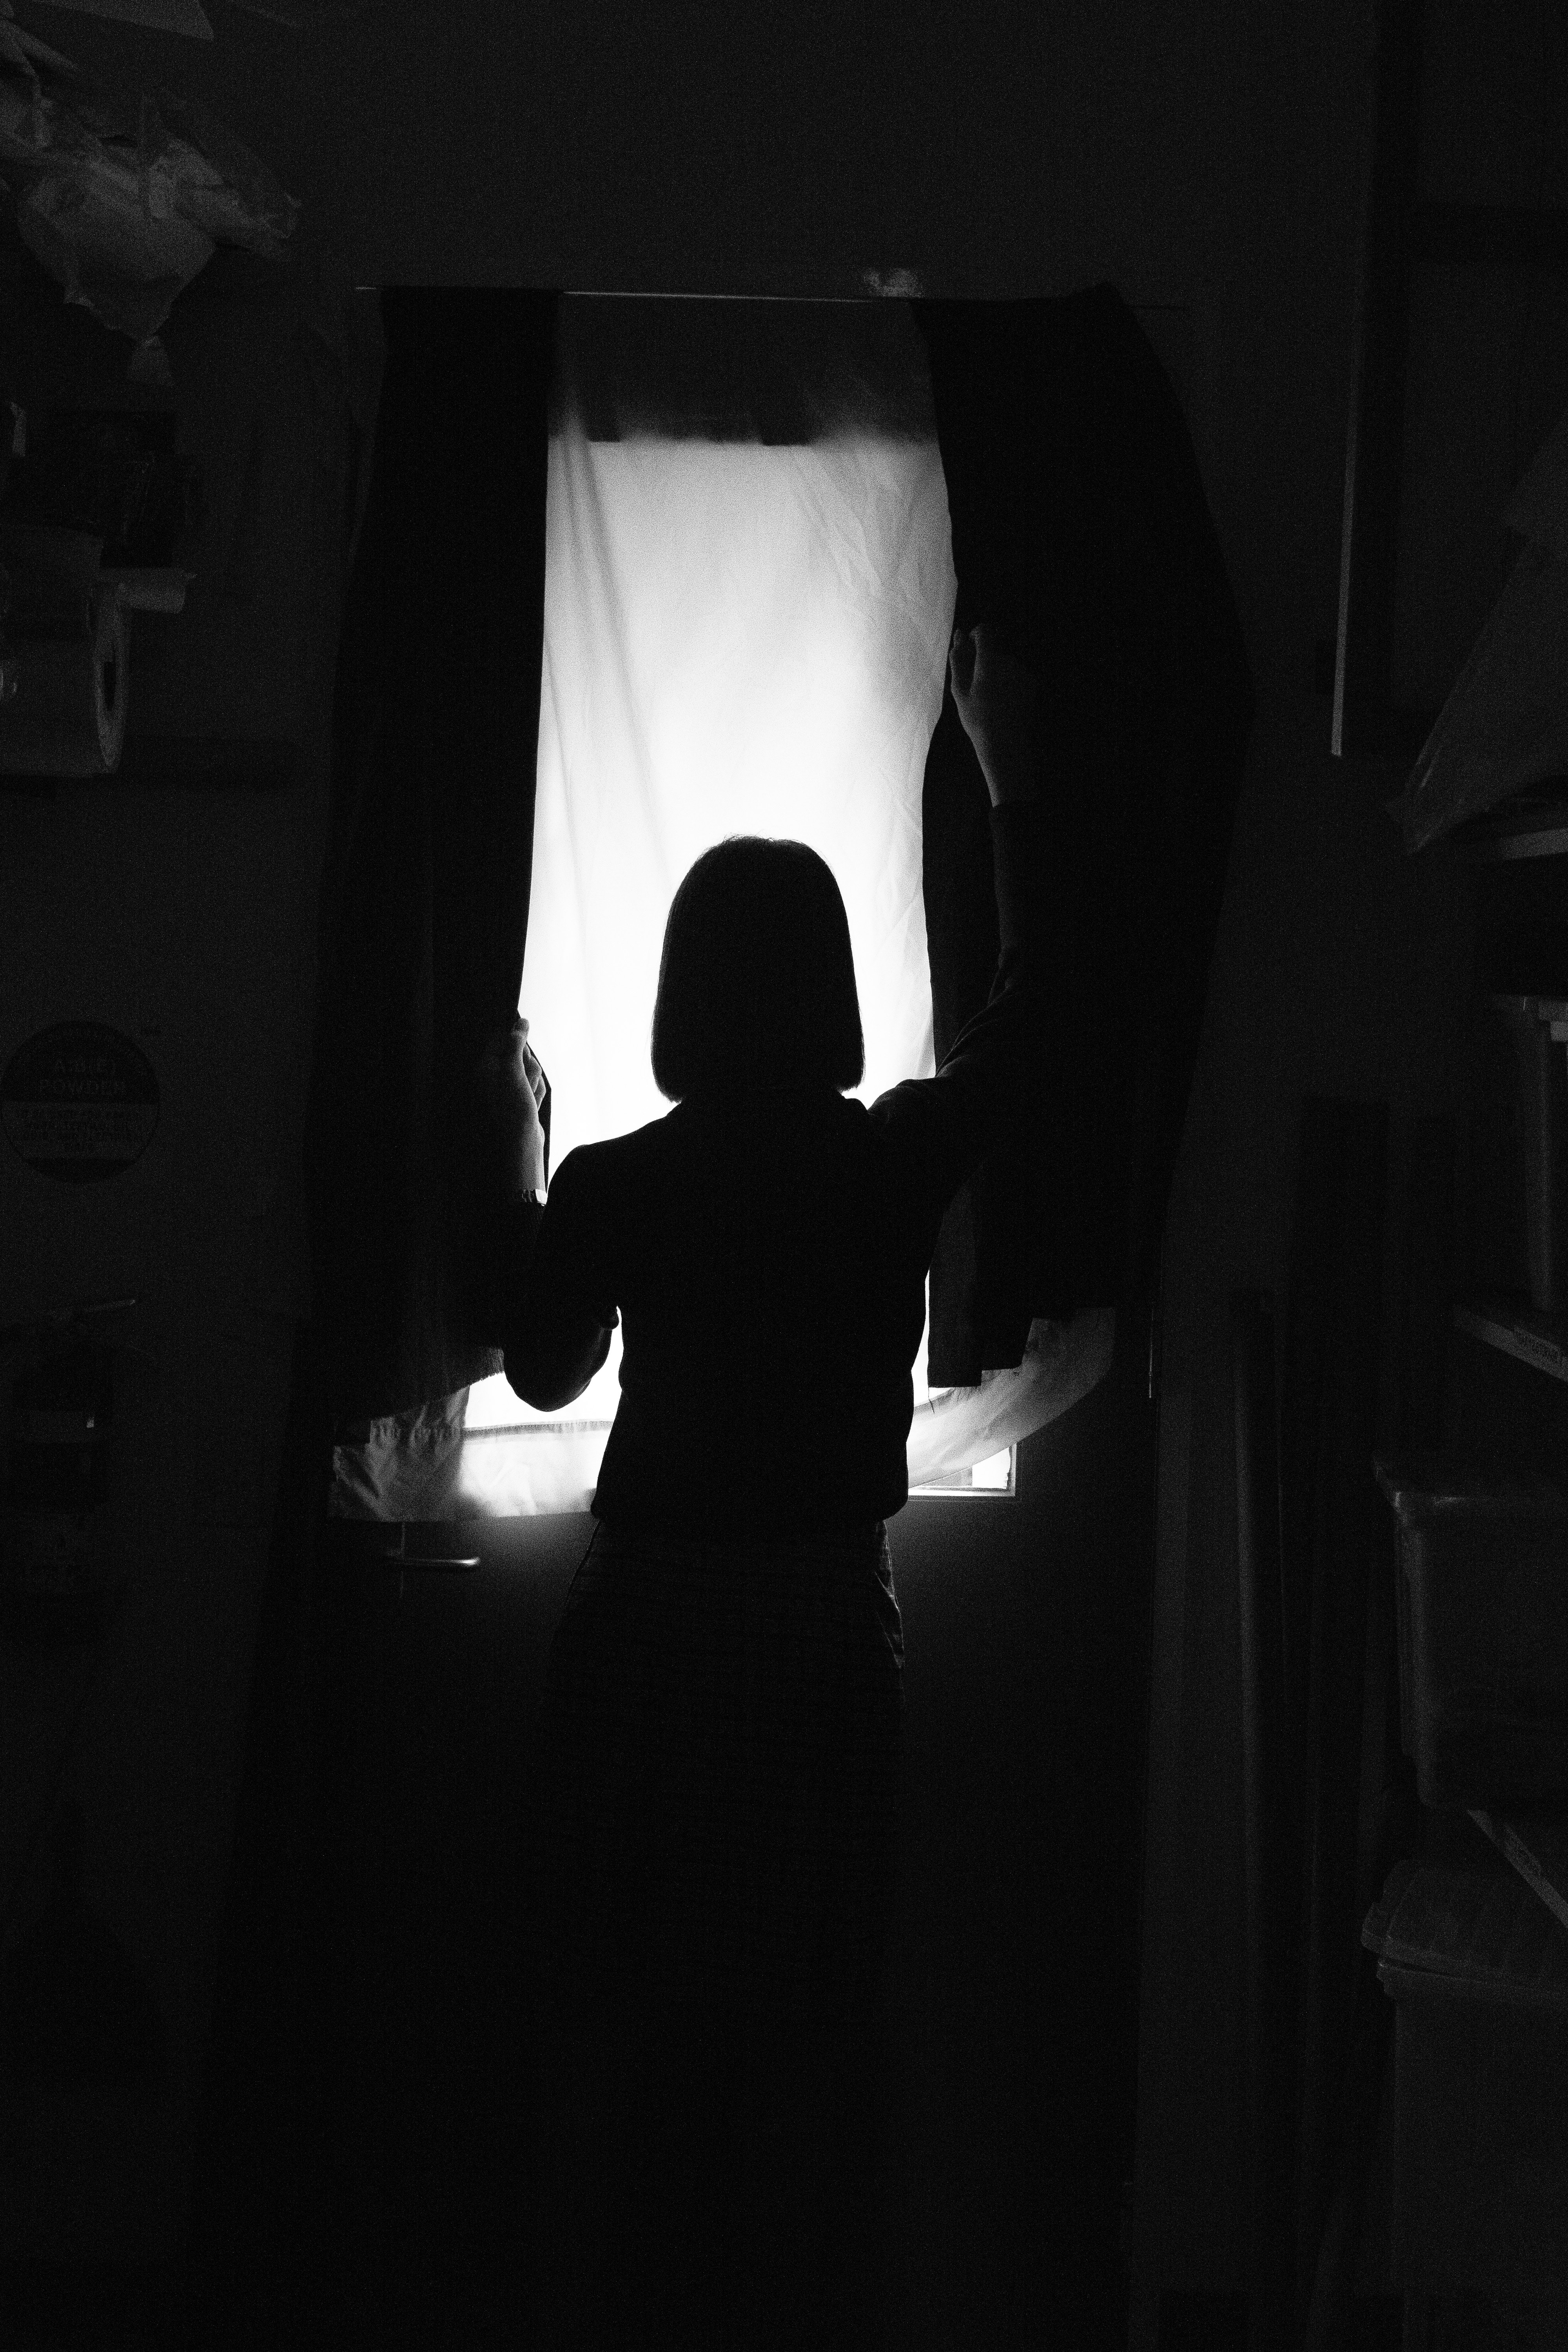 Silhouette Photo Of Person Standing In Front Of Window Free Stock Photo